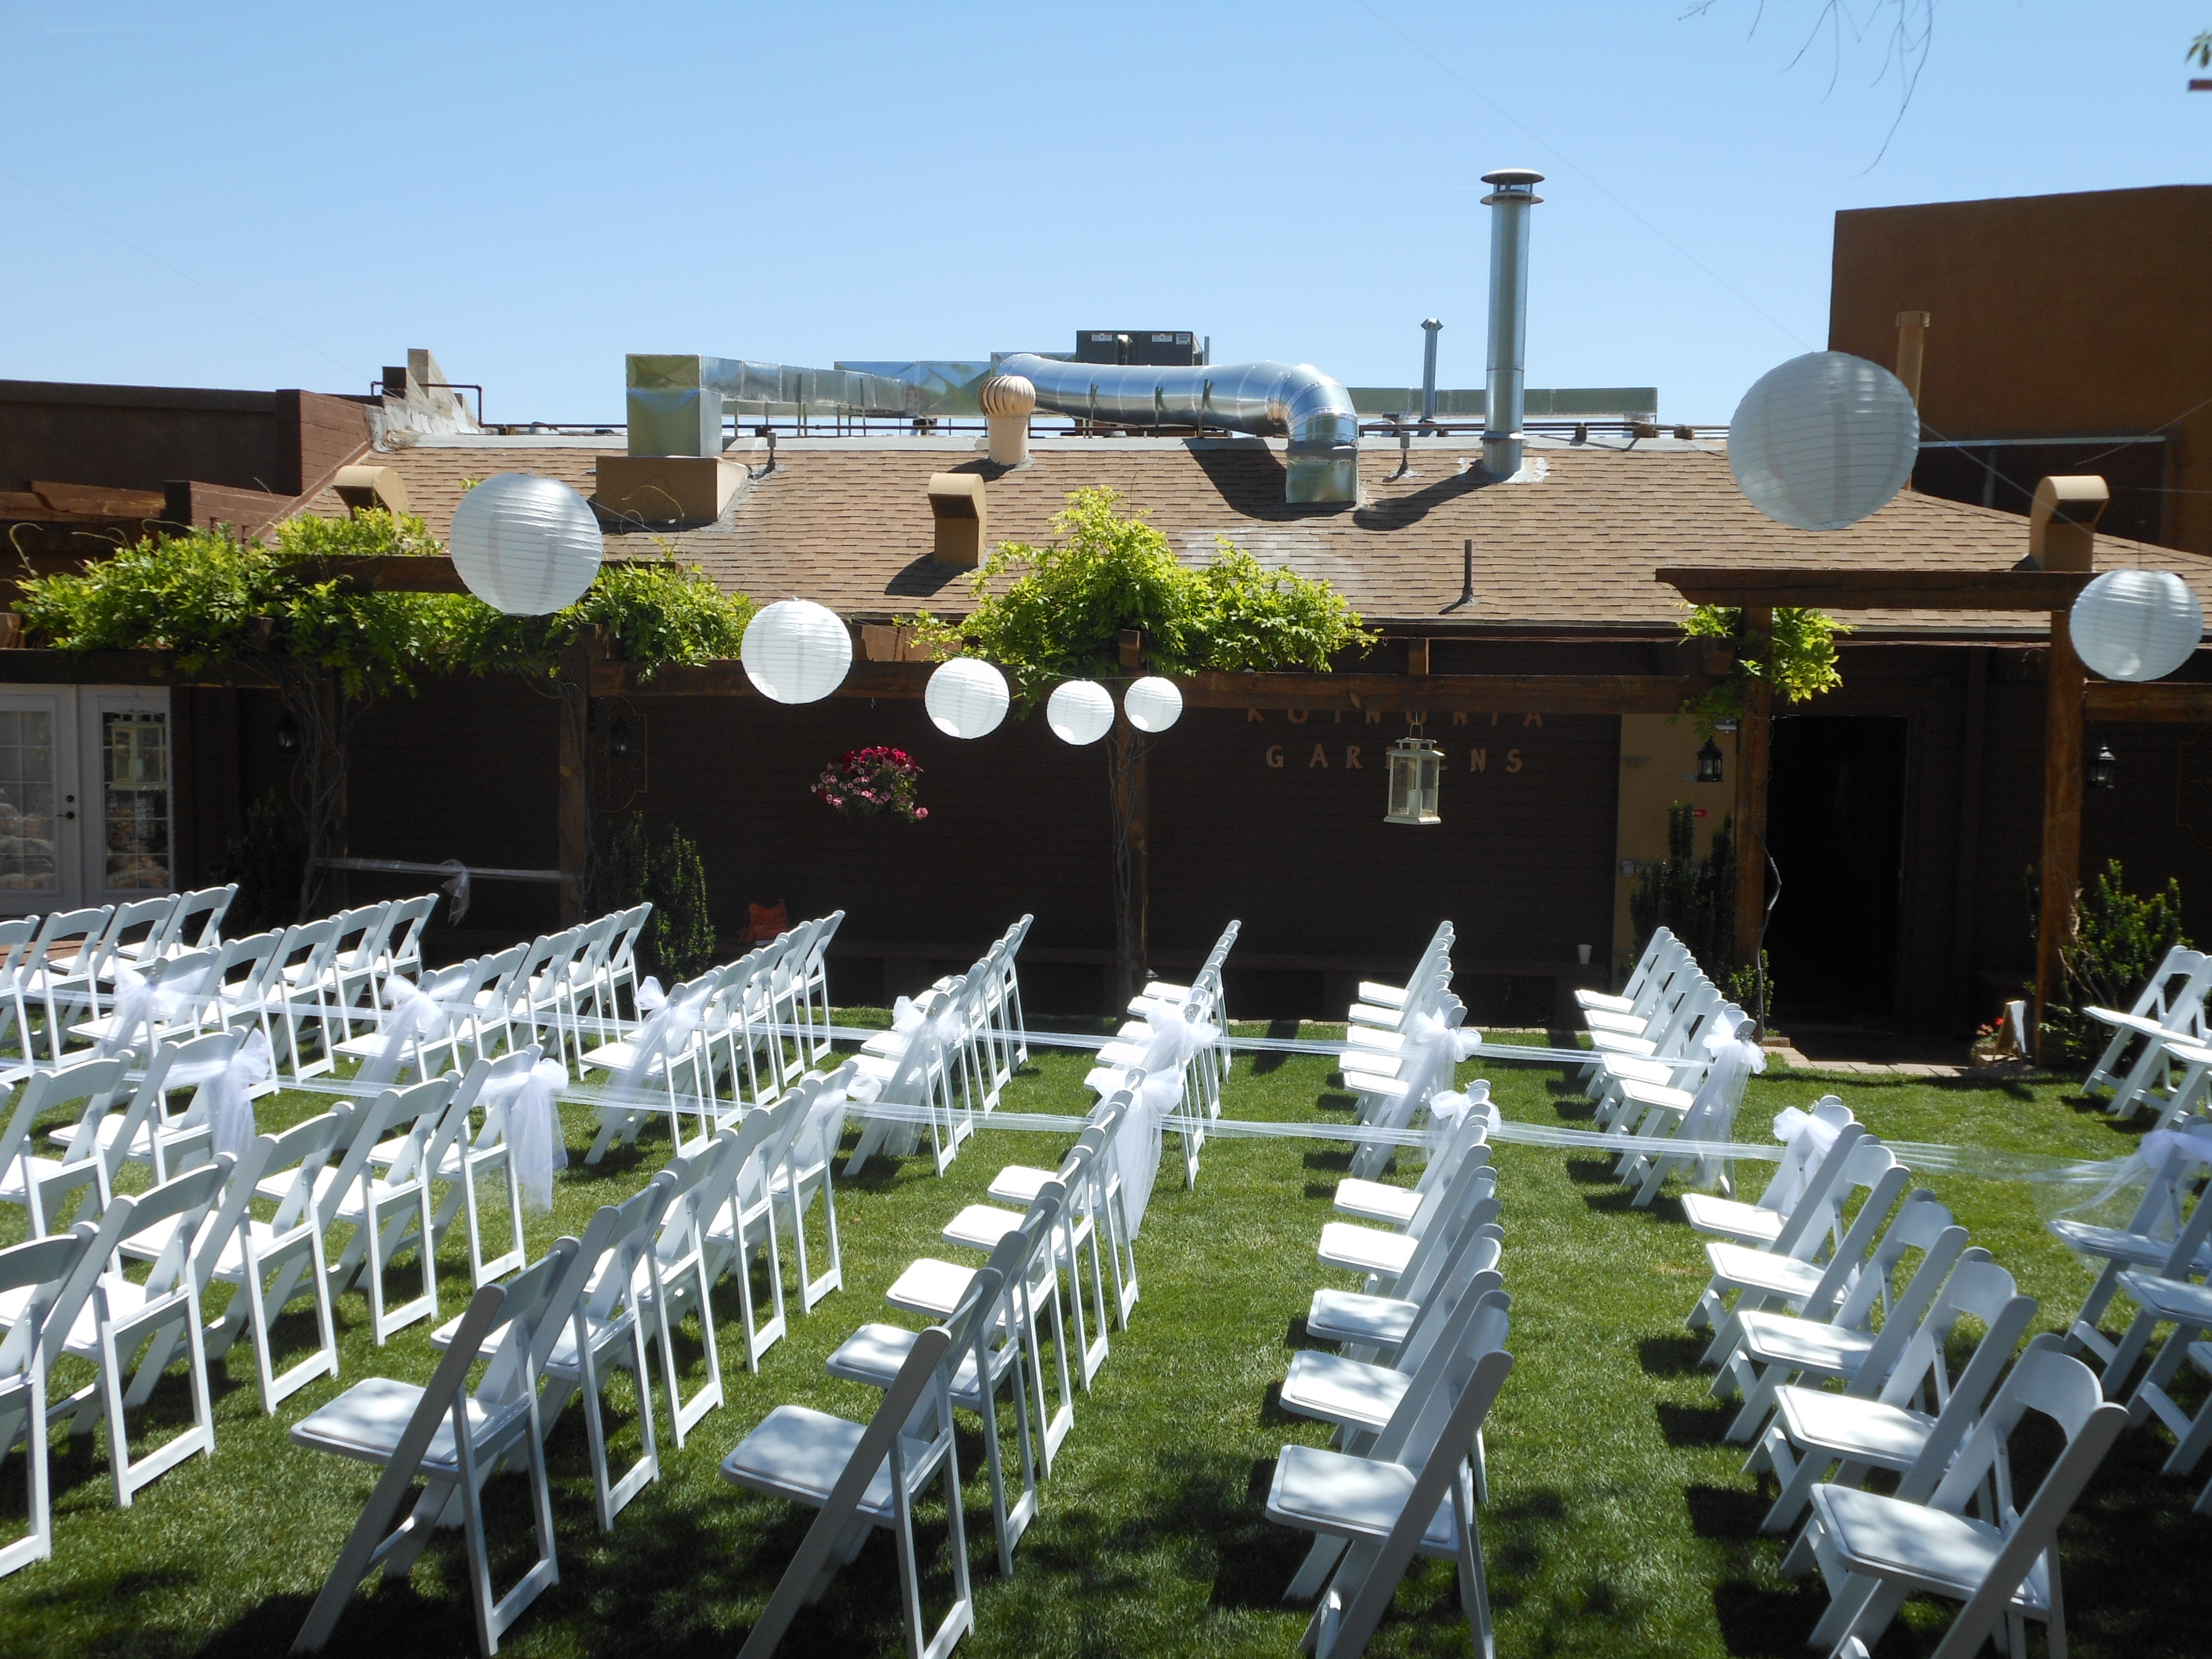 chairs set up from side view facing church